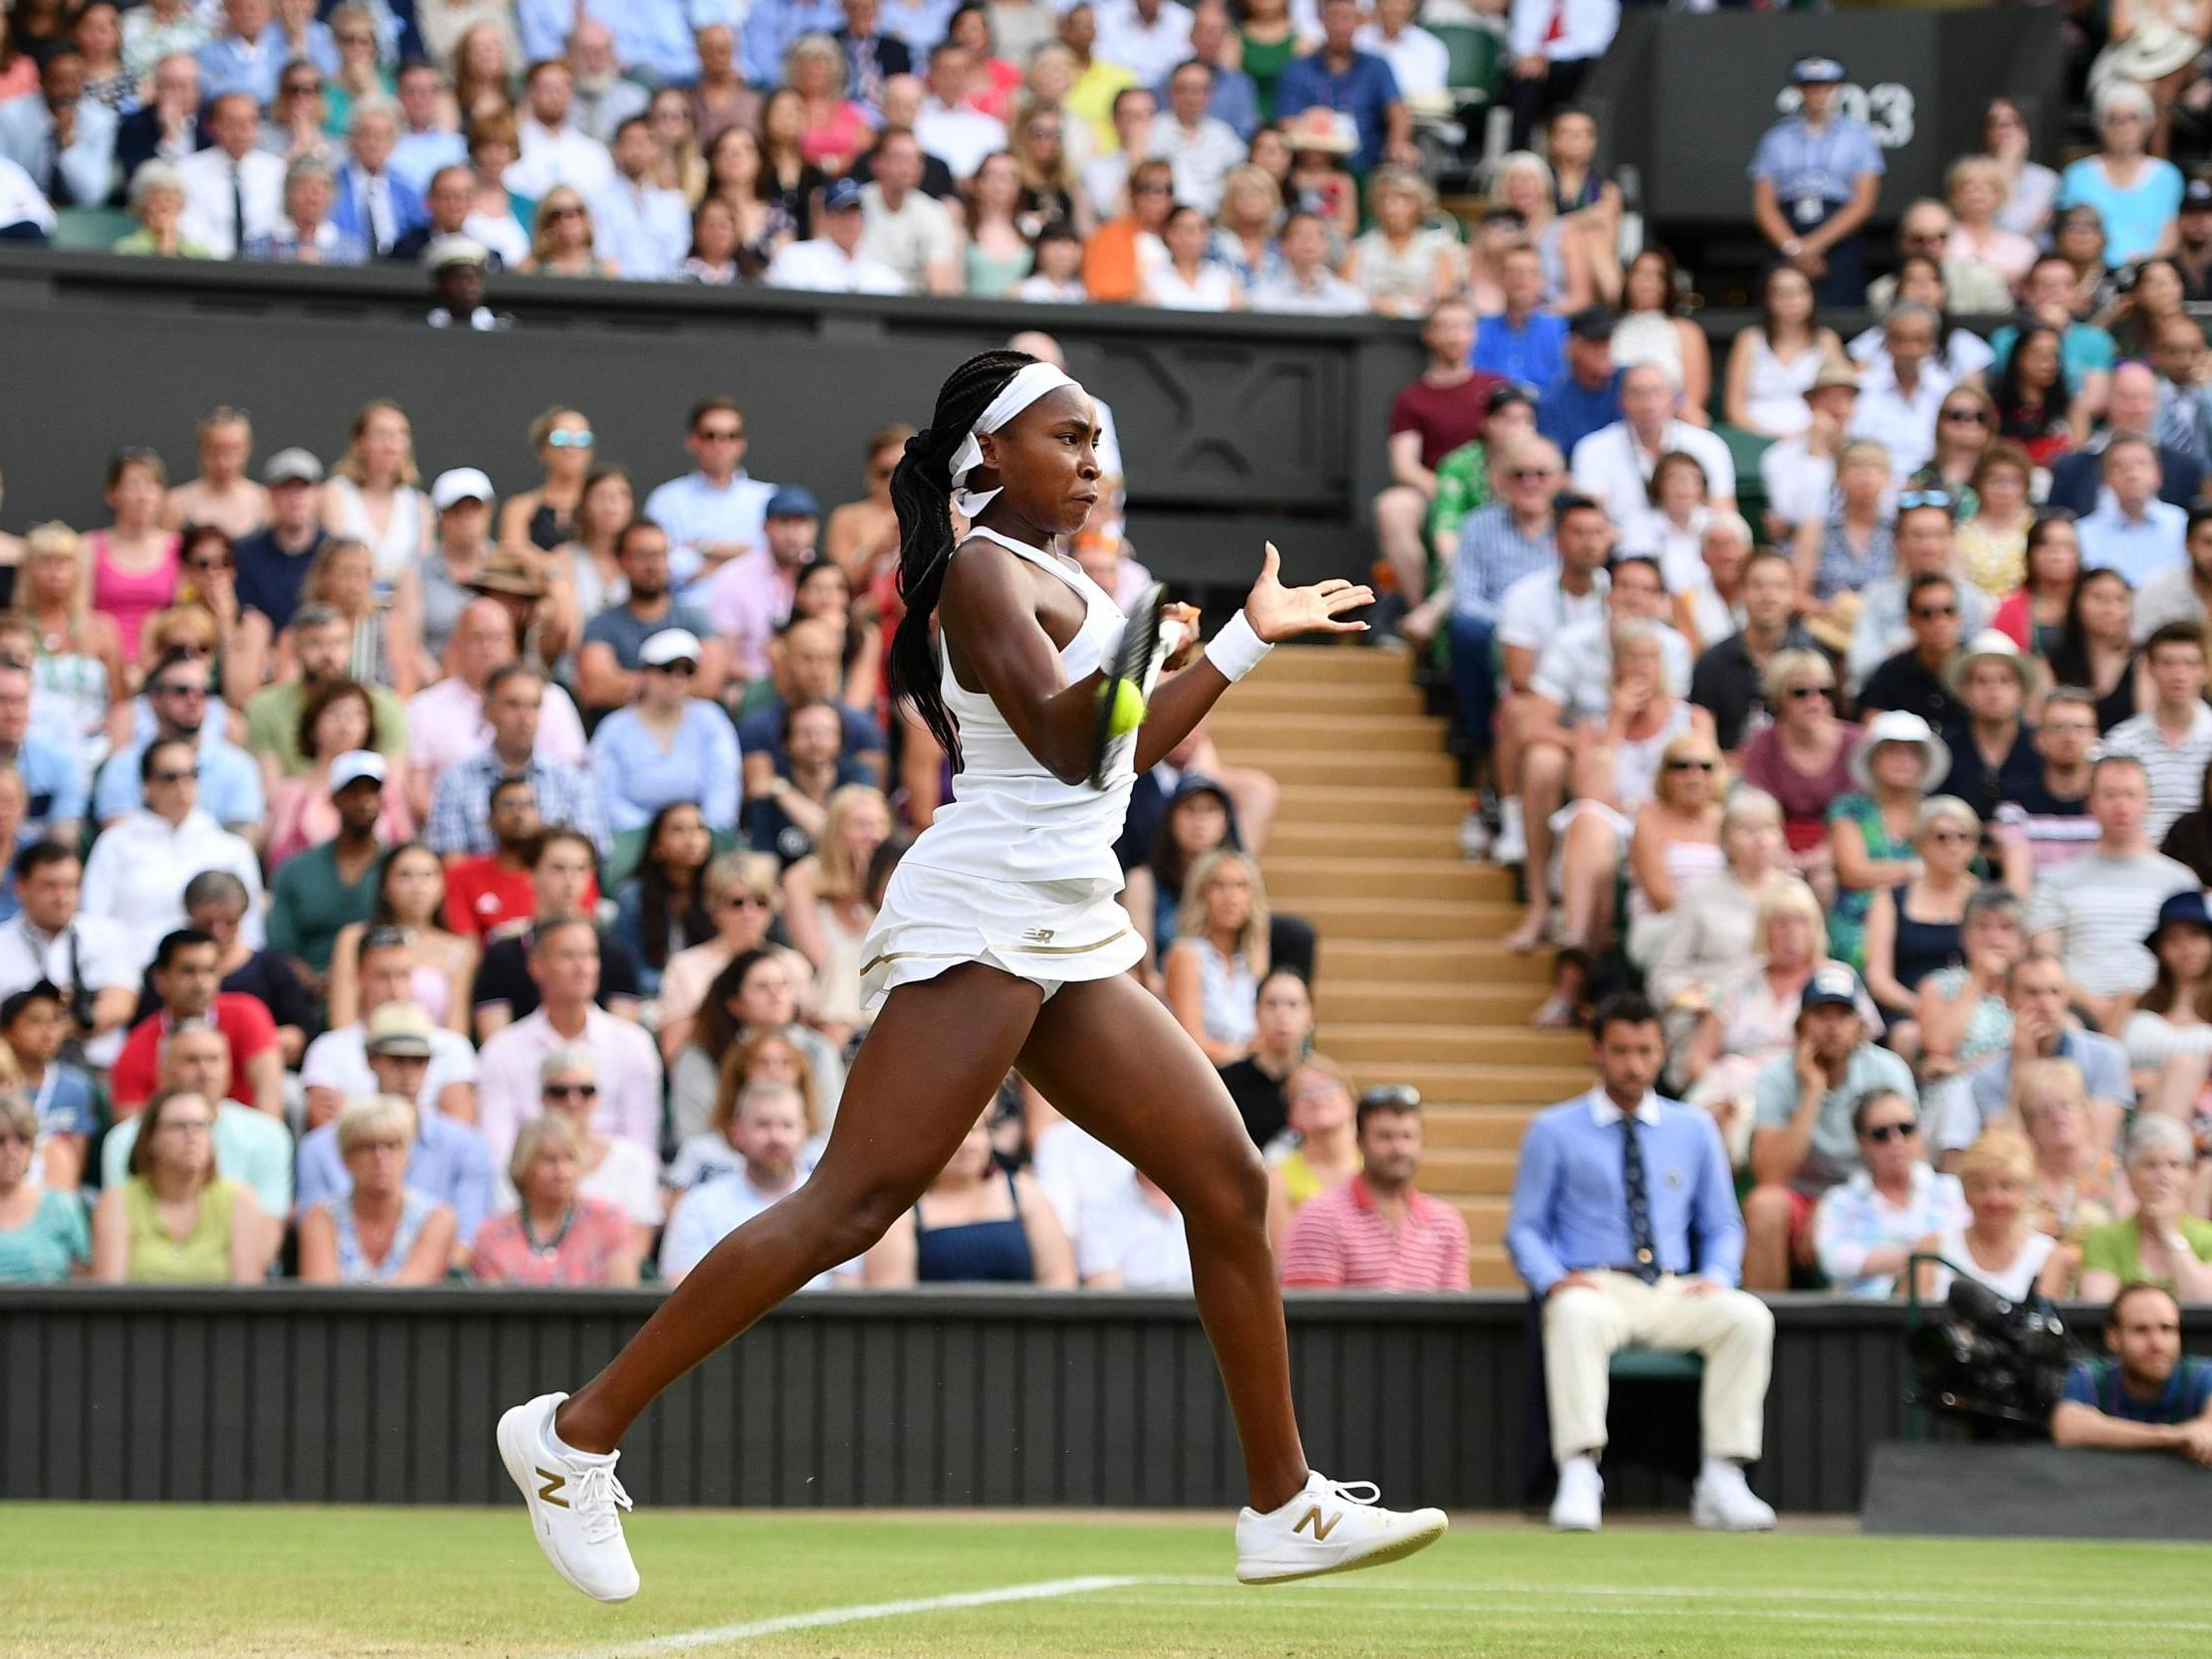 Wimbledon 2019: Coco Gauff is not the new Venus Williams – she's made a whole new category